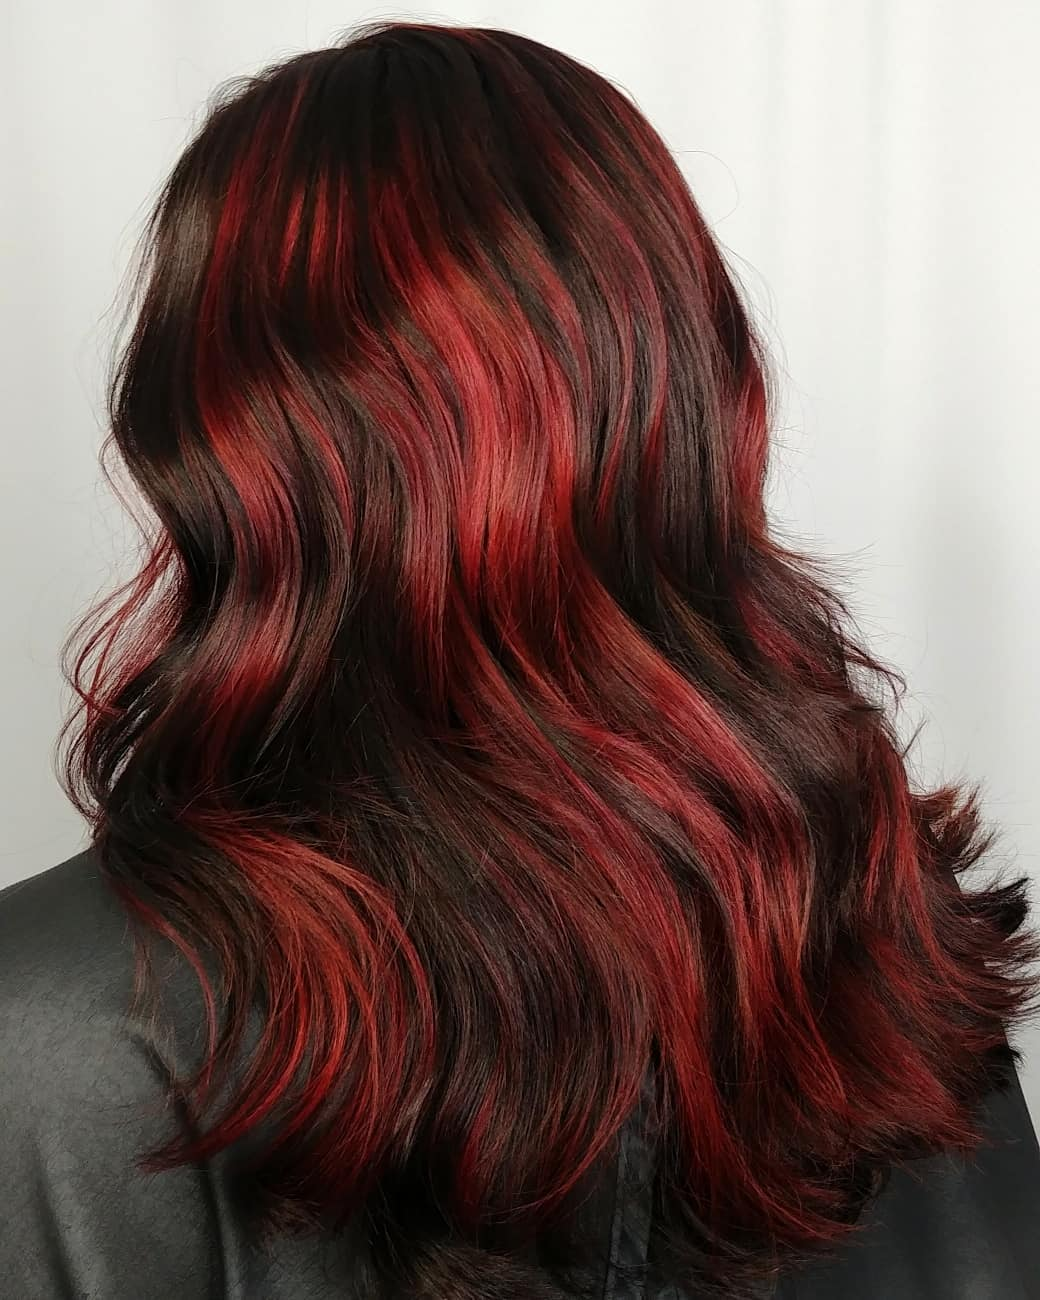 Elegant Dark Hair with Red Highlights